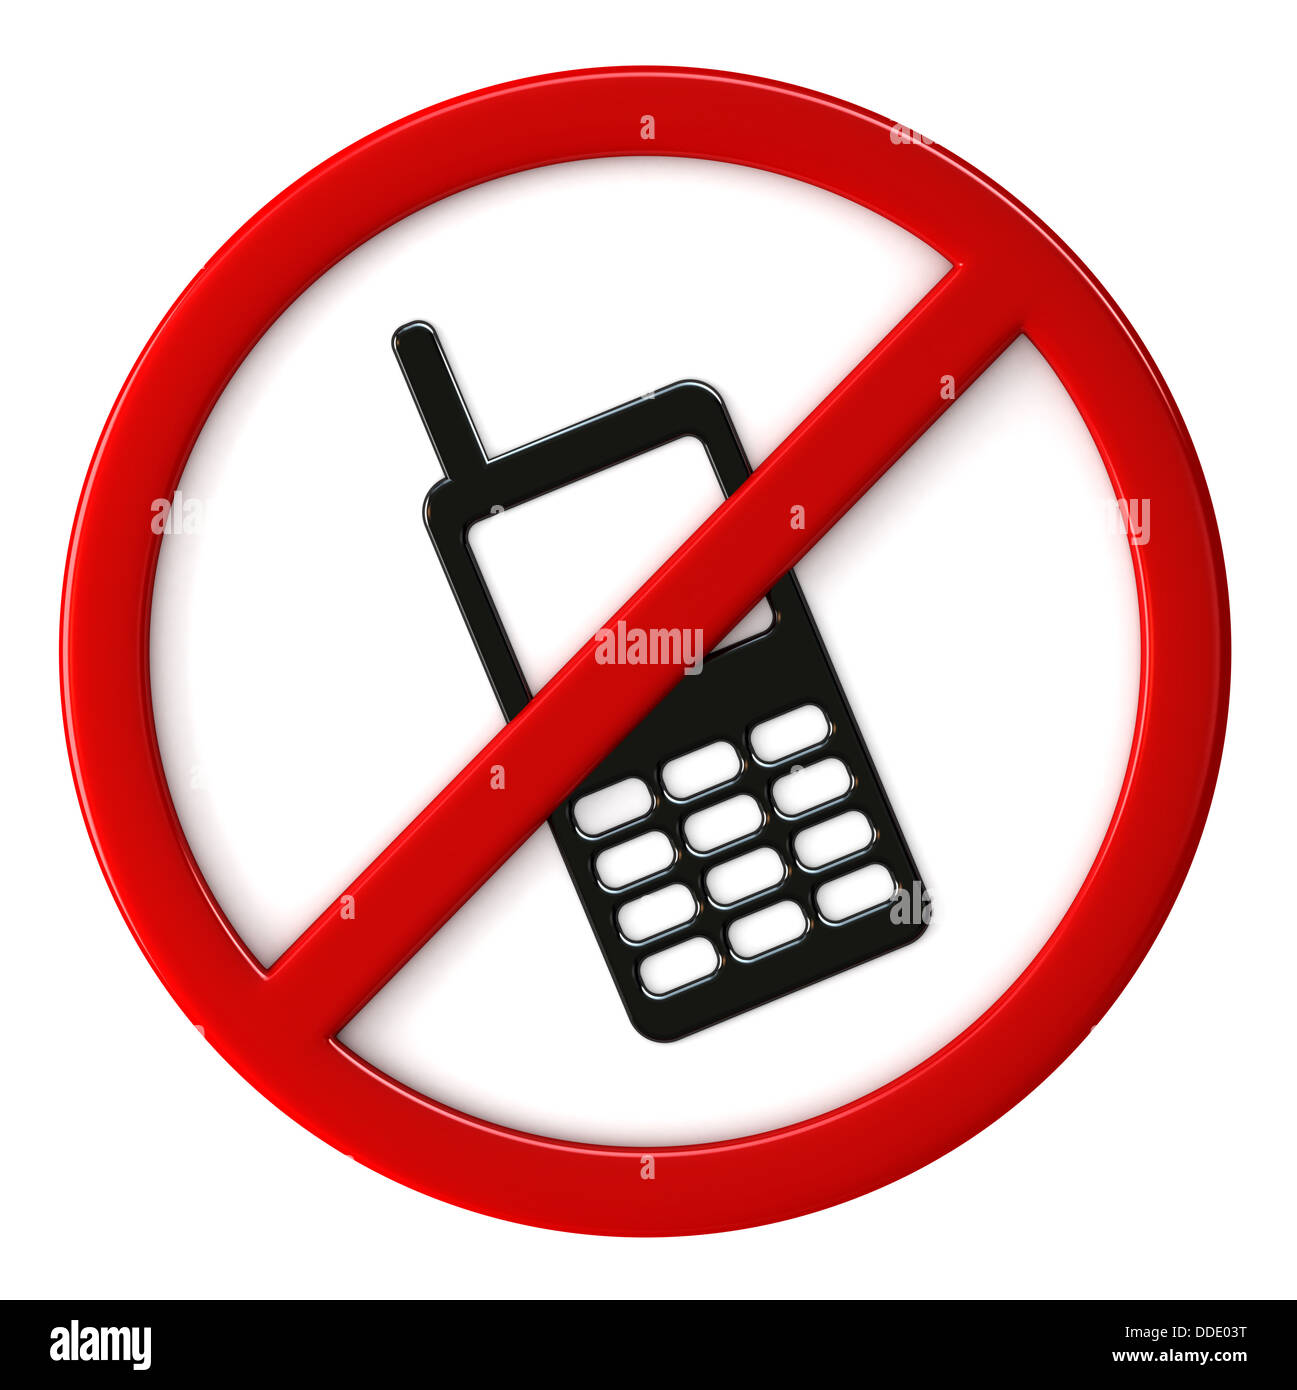 cell phones shouln t be allowed in Because, although evidence suggests that cell phone use before bedtime is  detrimental to sleep quality and, in turn, overall health and.